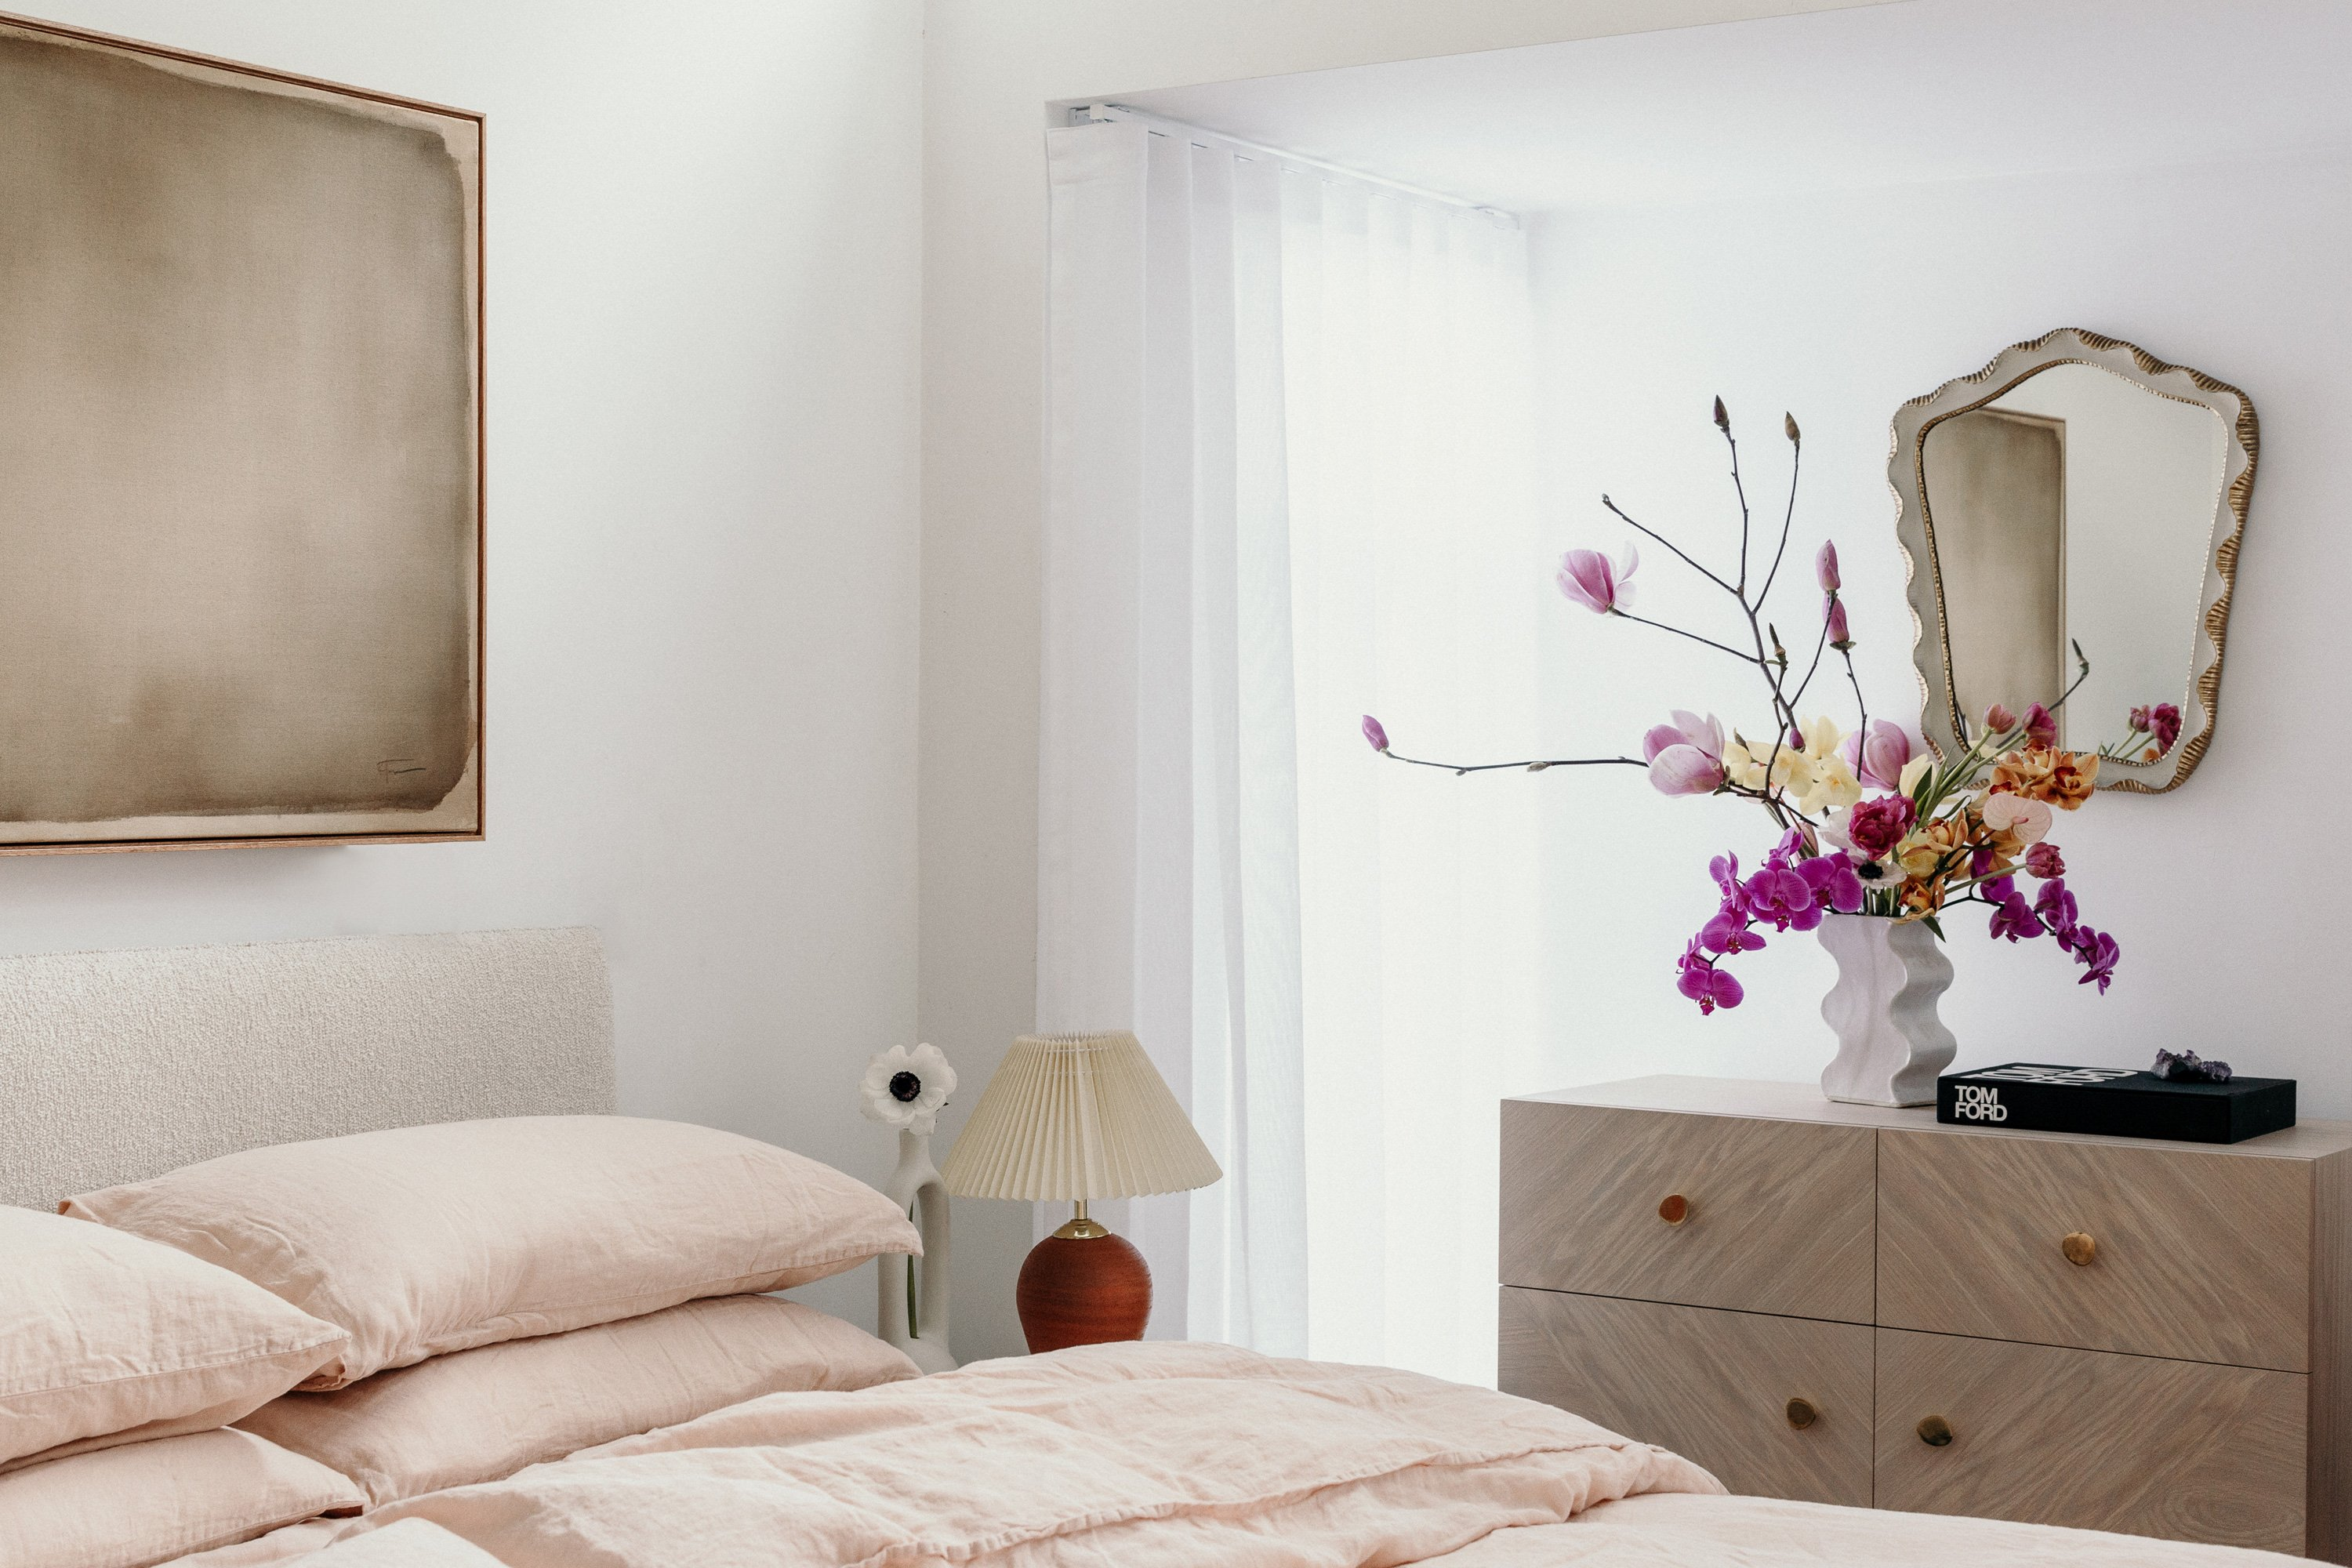 Nook High Back Bed, Airo Nude Bed Linen, Noah Sideboard + Wave Vase in Oyster